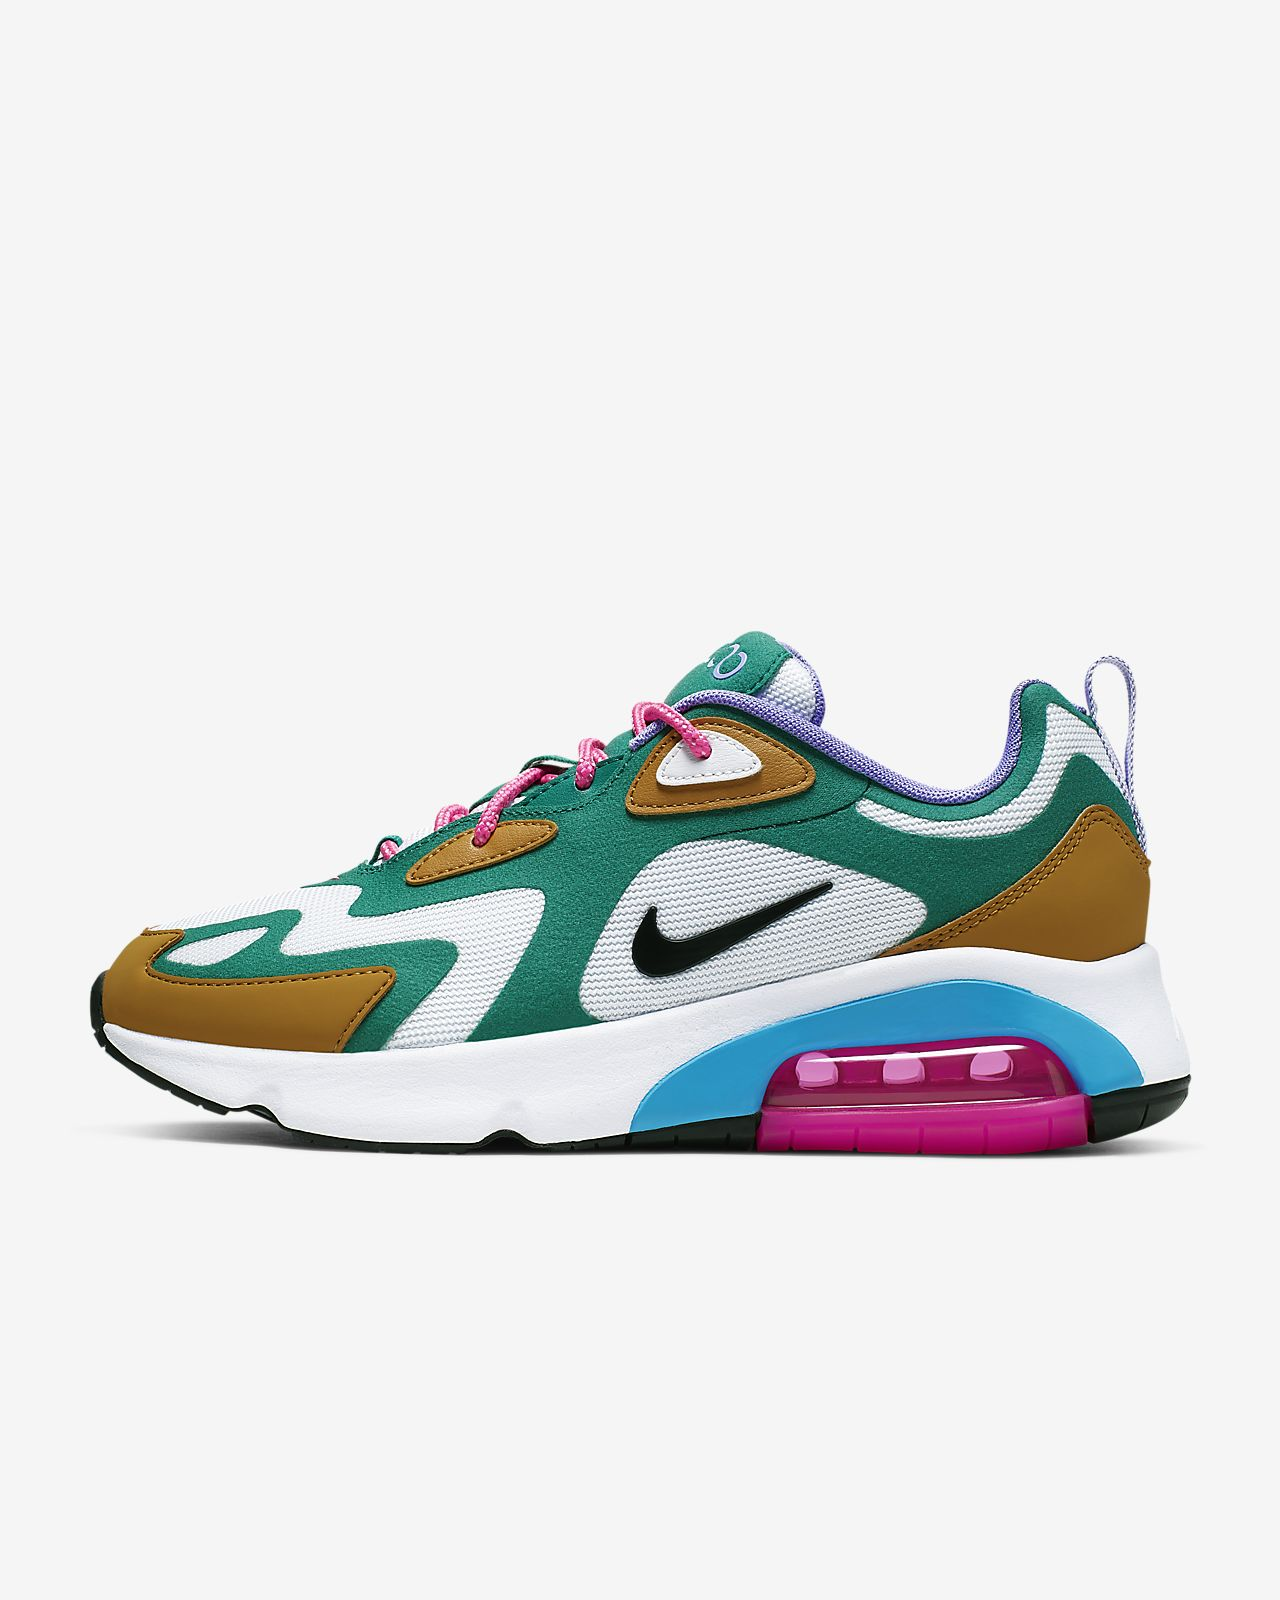 Nike Air Max Fury | Sneakers | Chaussure, Nike et Nike air